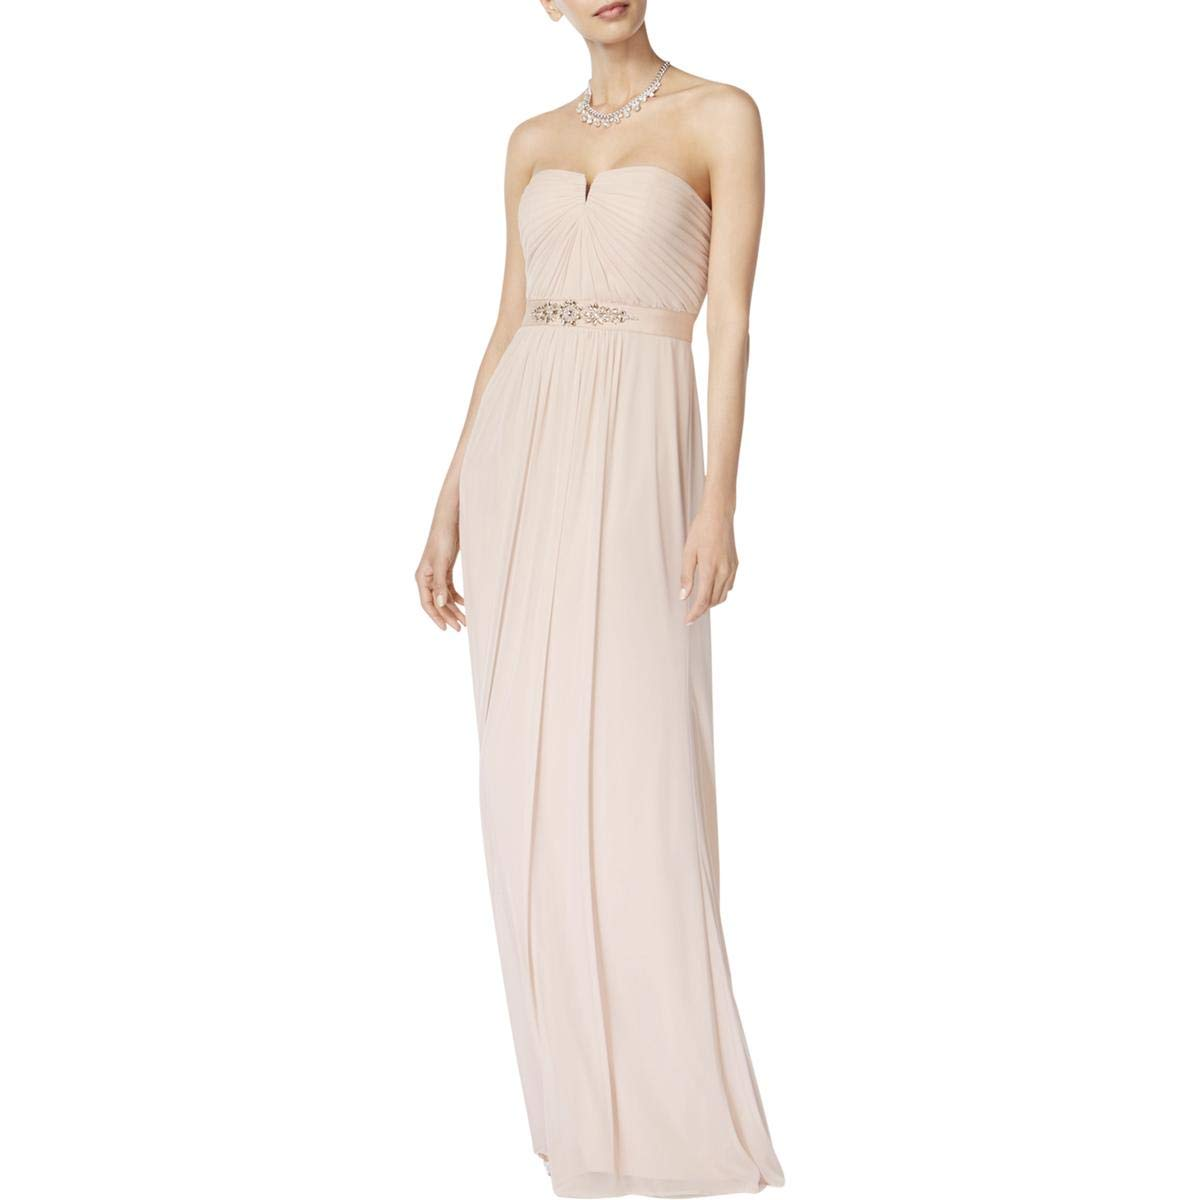 bluesh Adrianna Papell Womens Strapless Jeweled Formal Dress